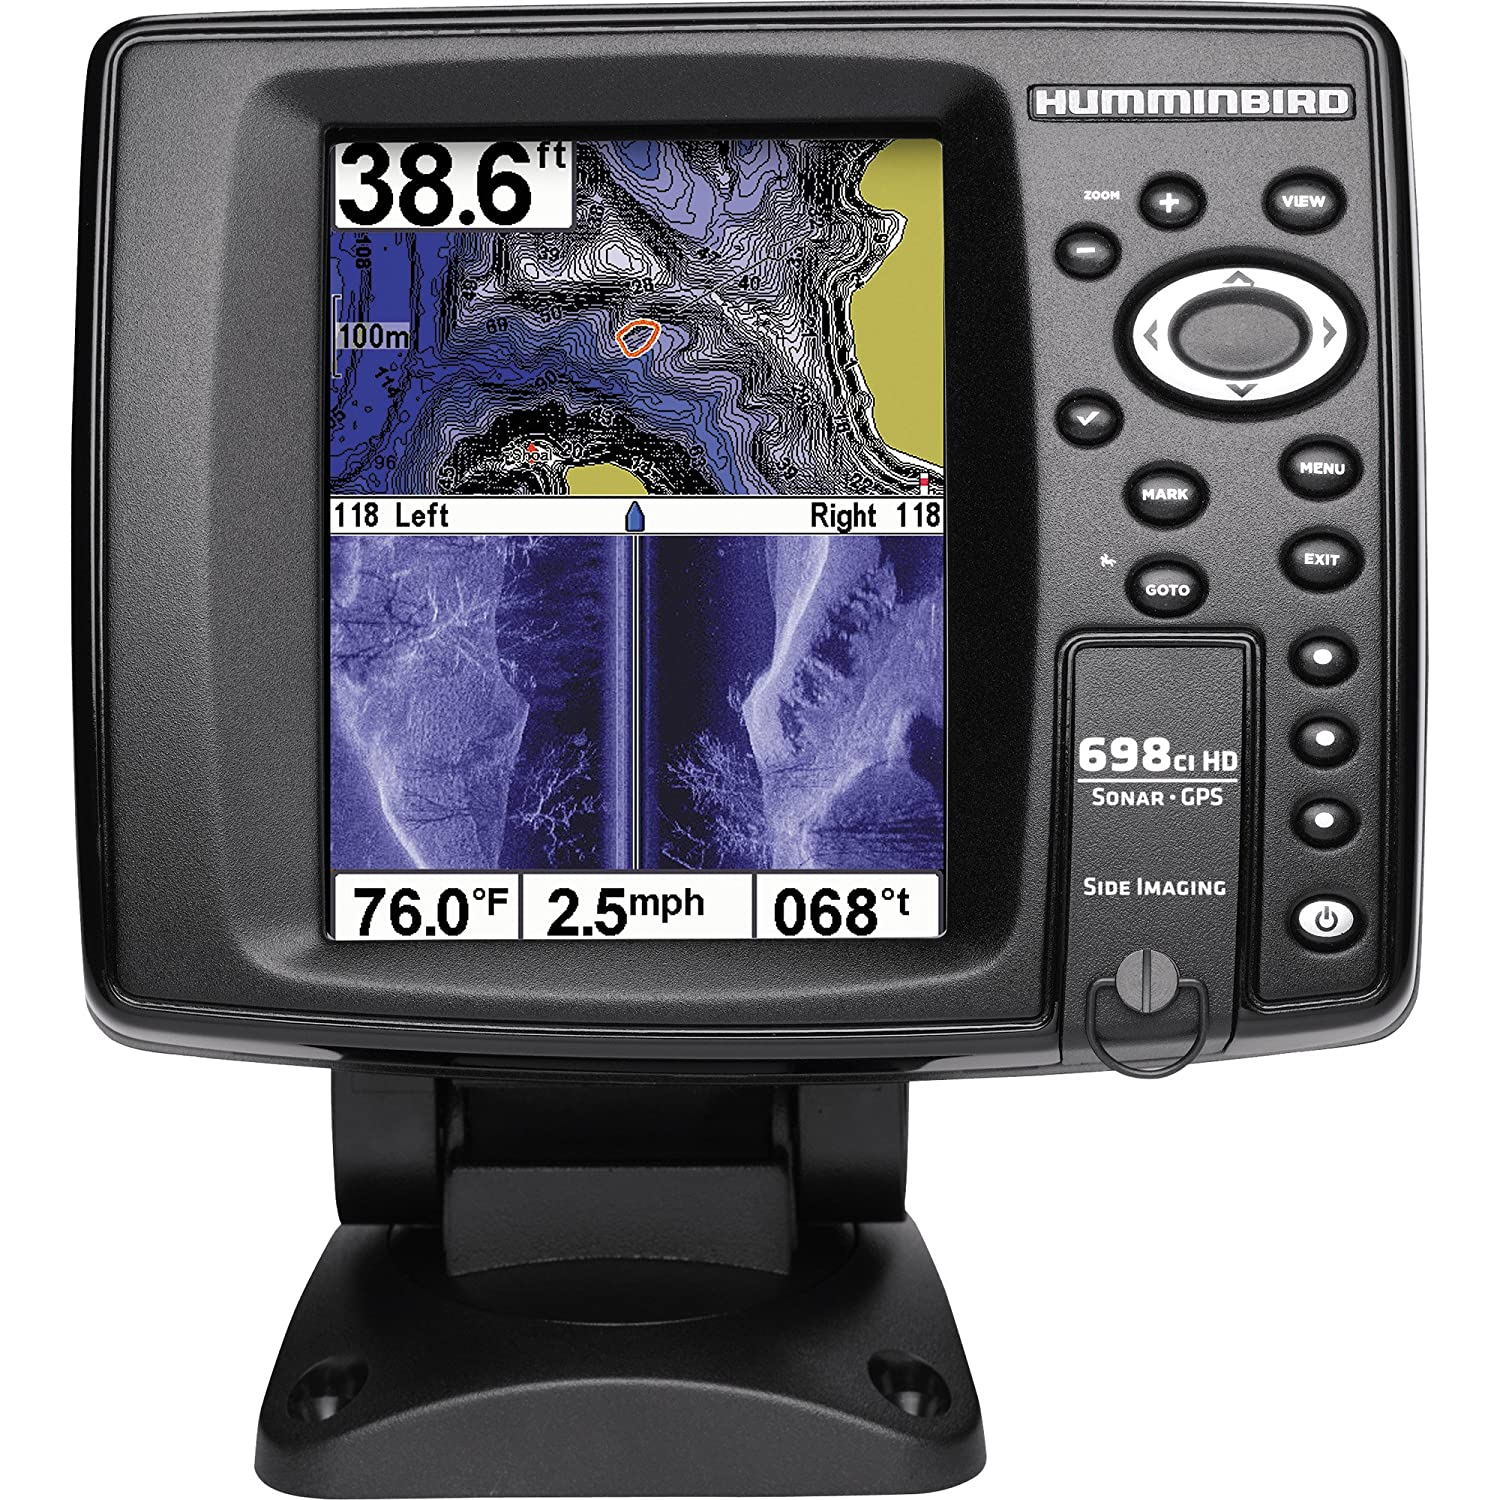 91mNI%2BzX4FL._SL1500_ amazon com humminbird 409470 1 600 698ci hd si internal gps sonar humminbird 598ci hd si installation manual at highcare.asia